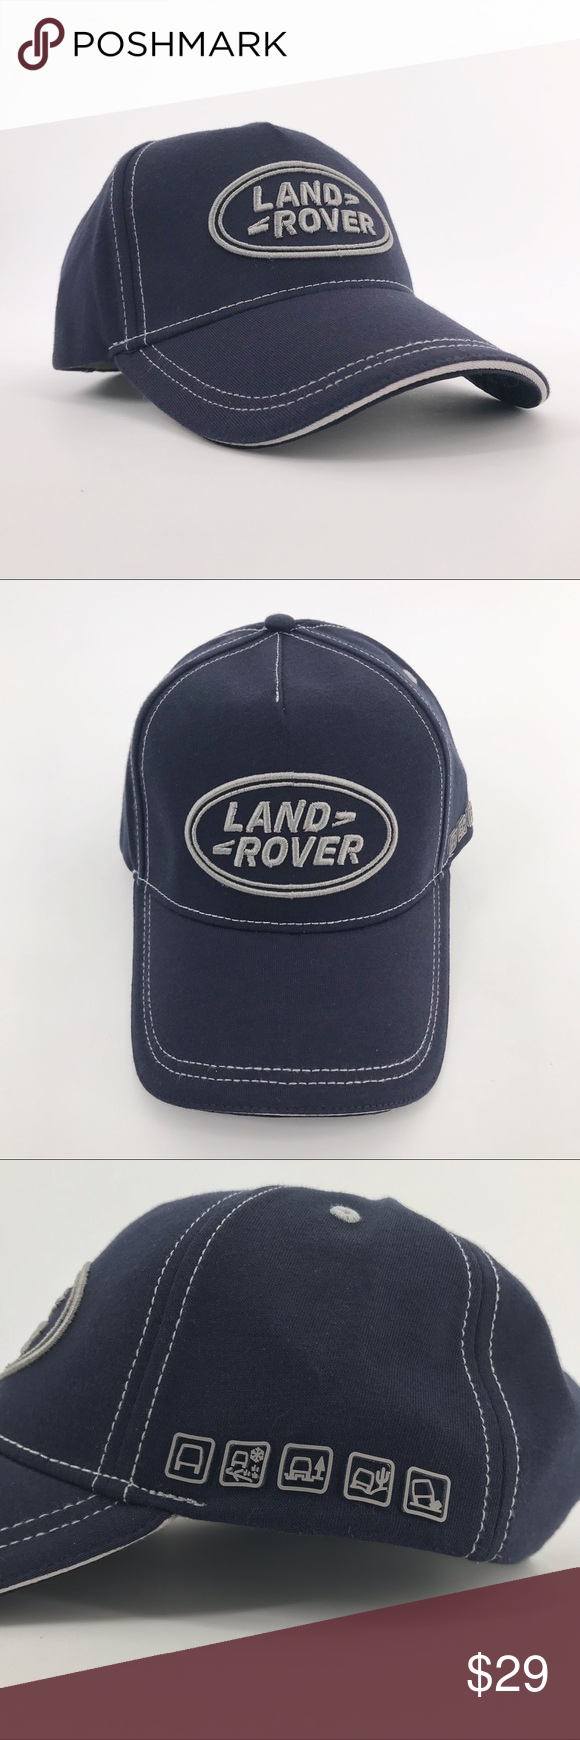 Sold Genuine Land Rover Lifestyle Collection Cap Land Rover Women Accessories Hats Collection